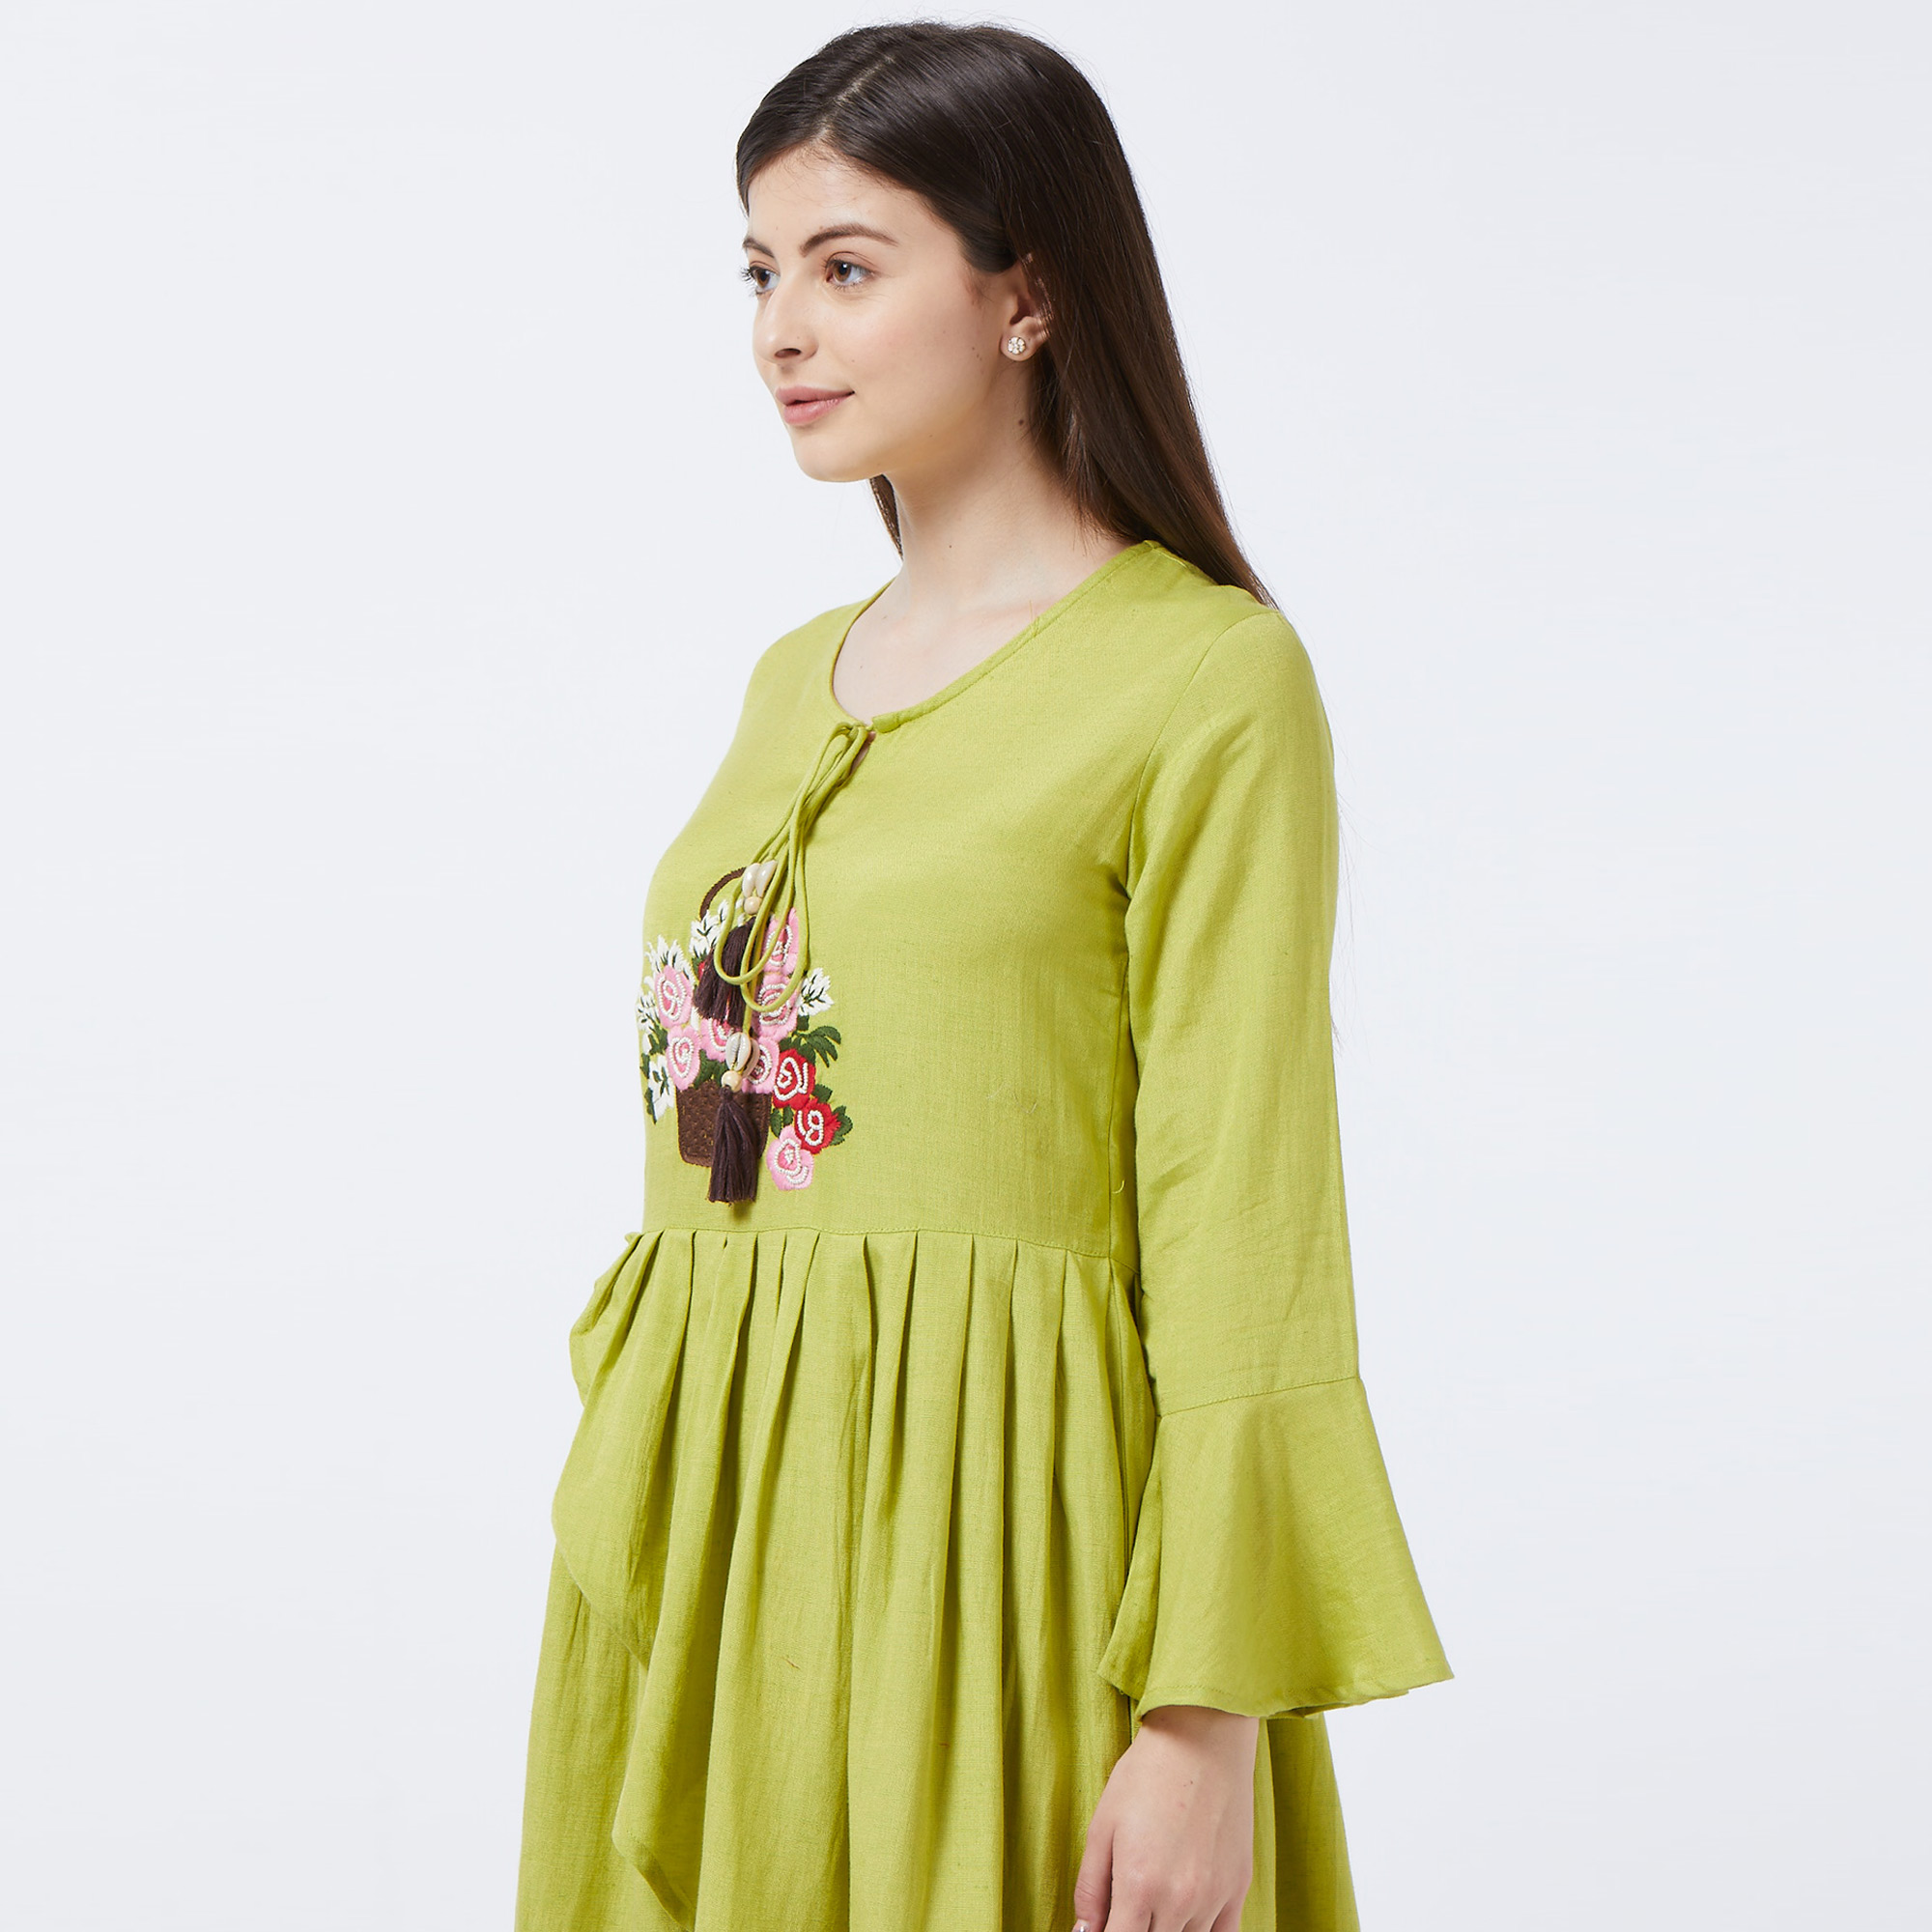 Delightful Green Colored Partywear Embroidered Bell Sleeves Rayon Kurti And Dhoti Set